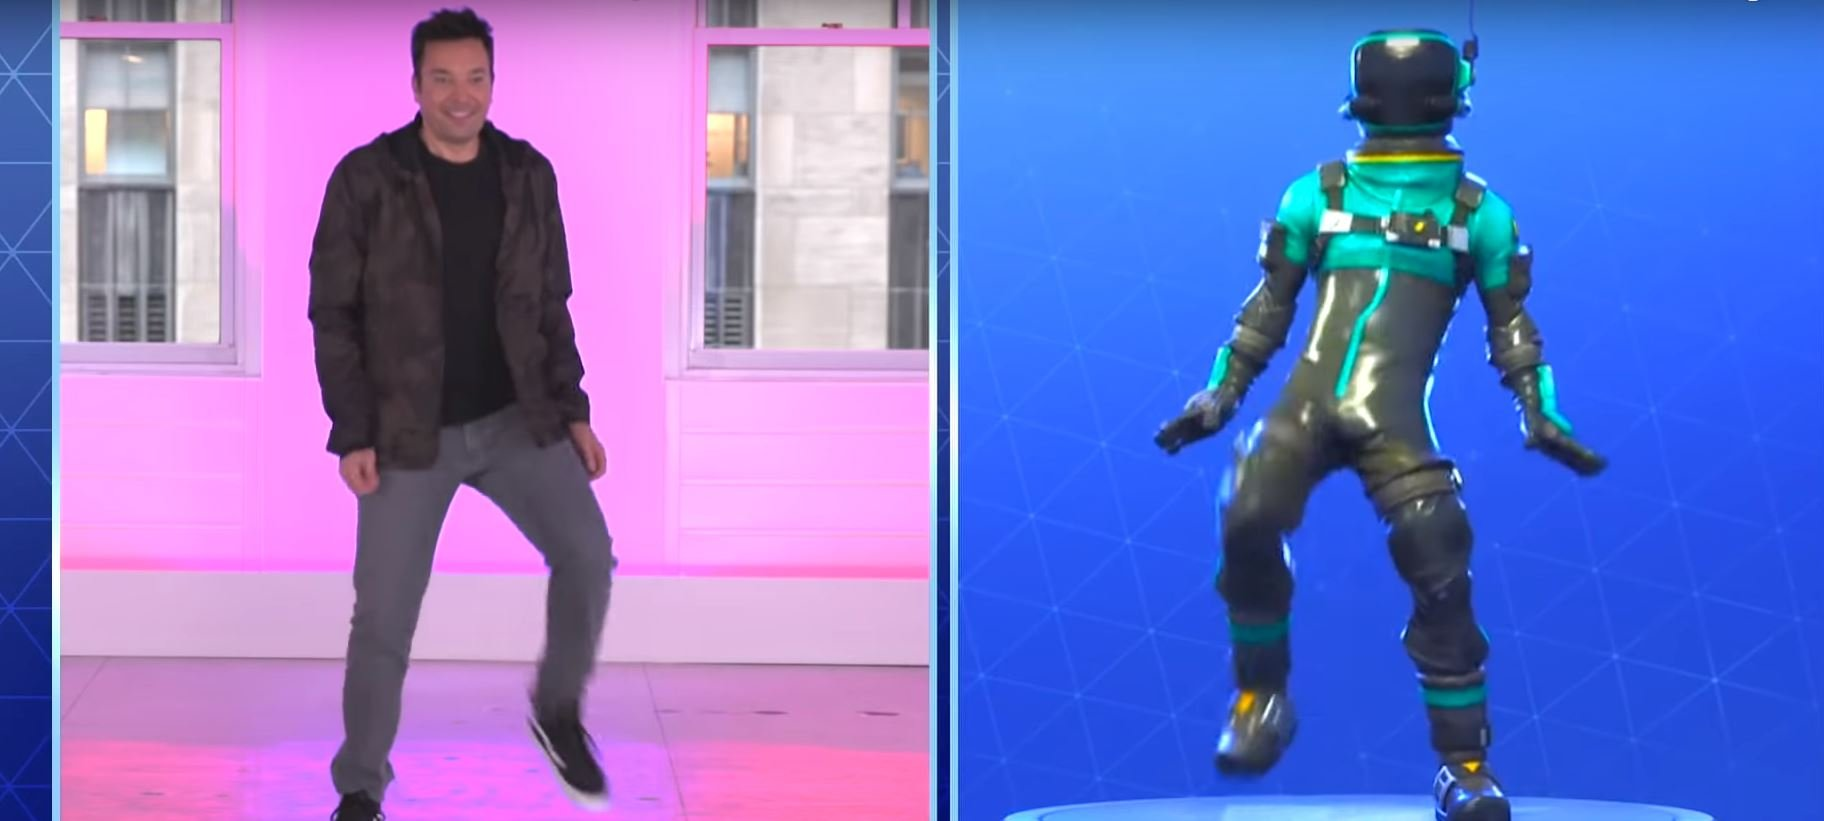 Jimmy Fallon Gets Into The Fortnite Groove With South Korean Boy